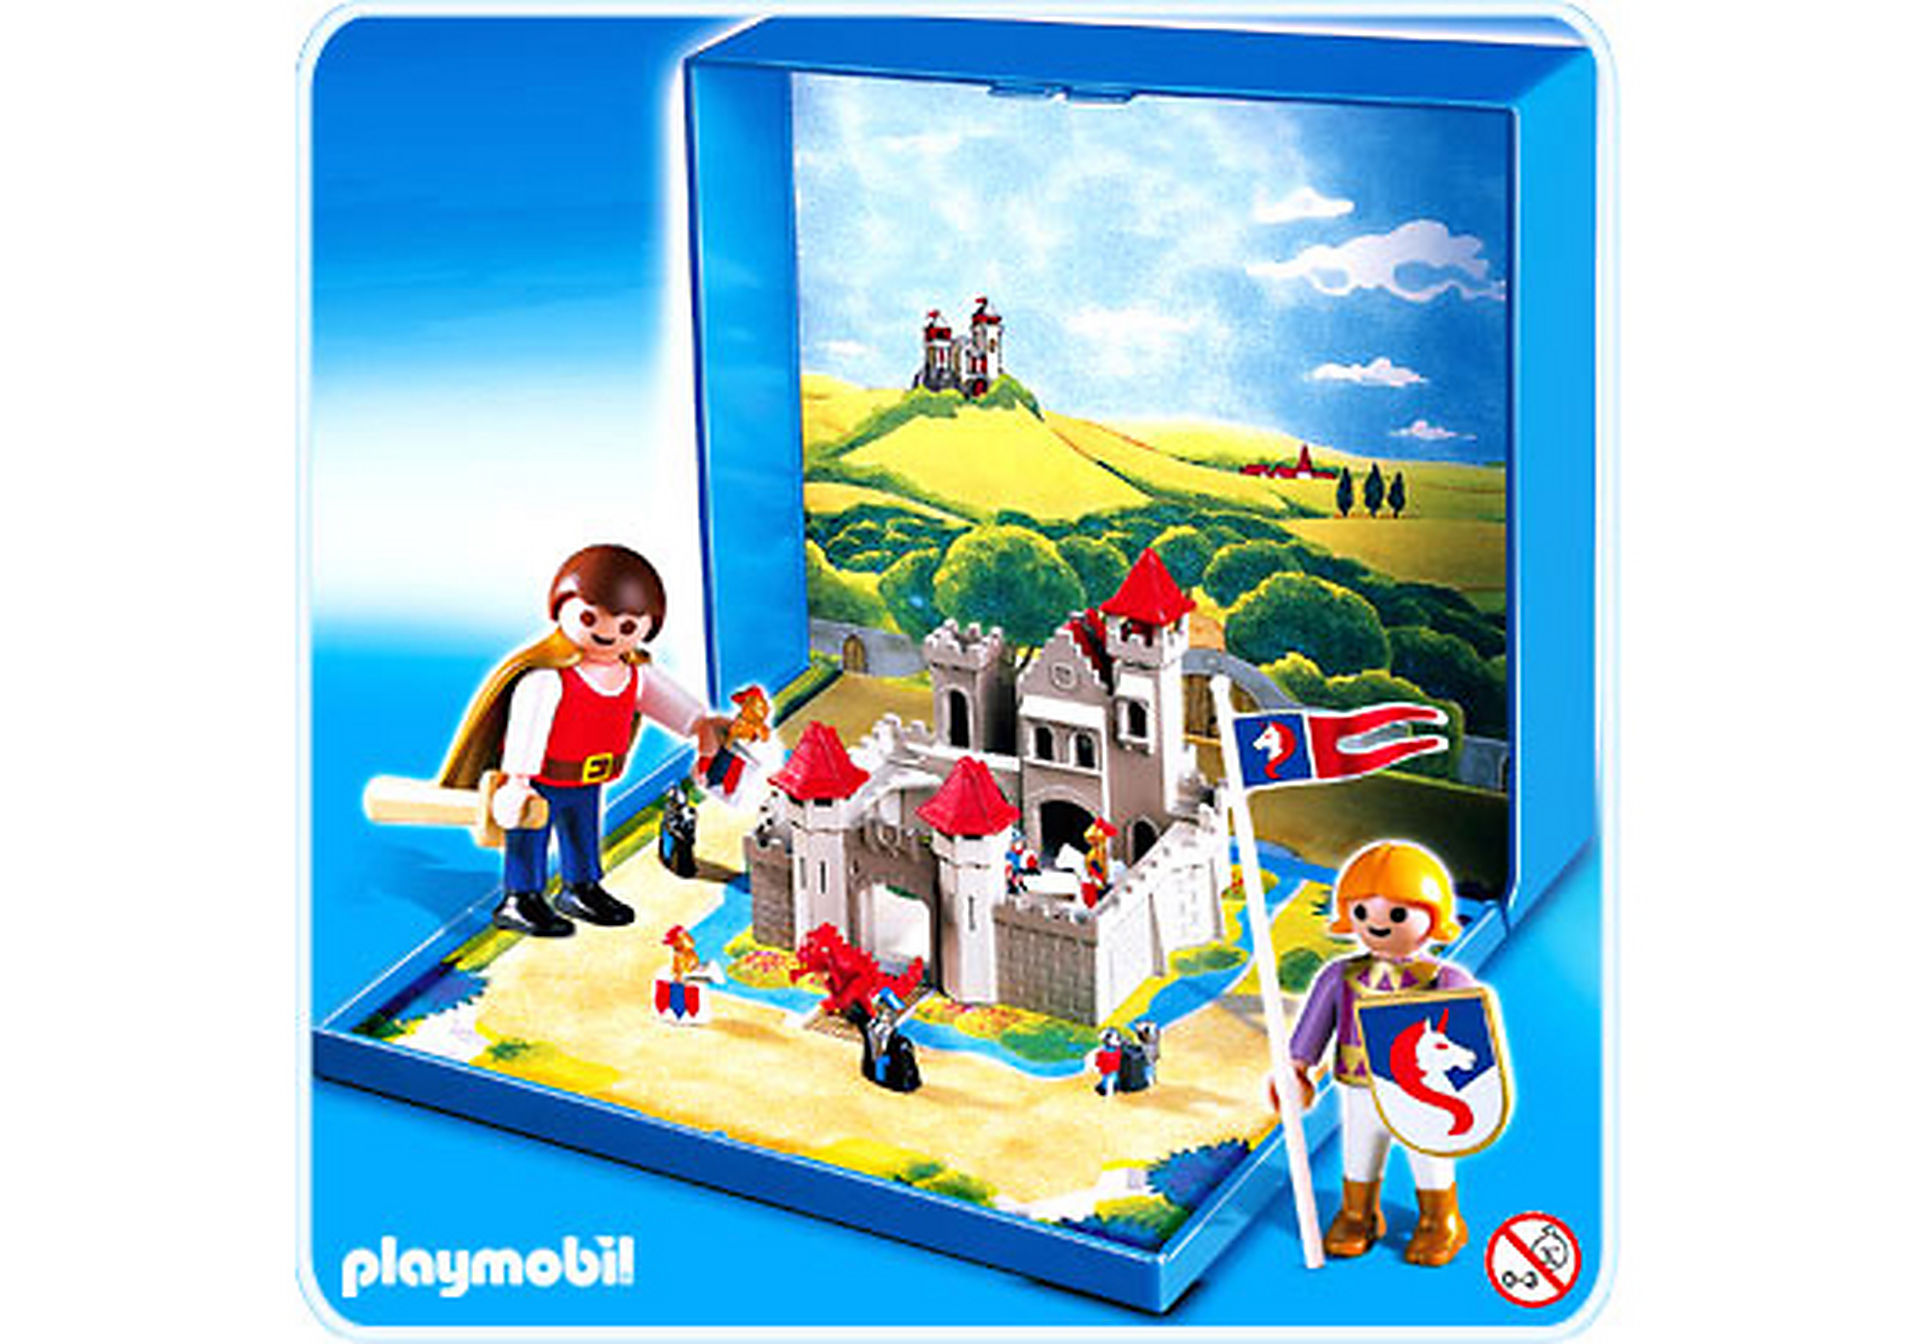 http://media.playmobil.com/i/playmobil/4333-A_product_detail/Micro Playmobil Chevaliers